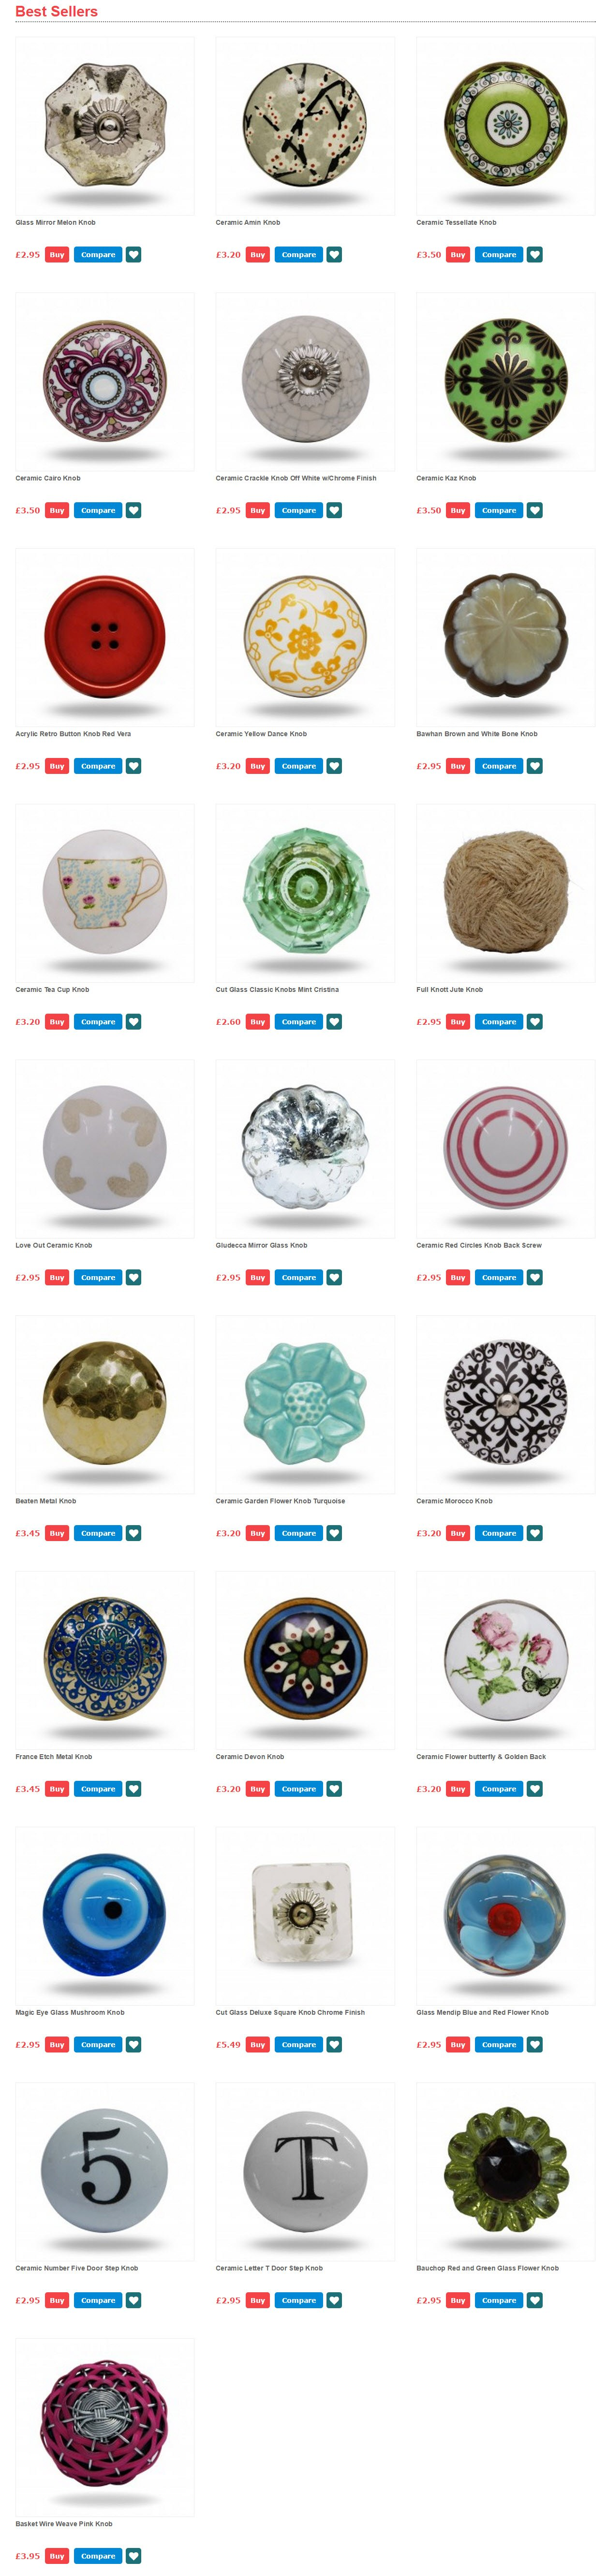 http://www.trinca-ferro.com/ - Add Pizzazz To Your Decor With Gorgeous New Hardware